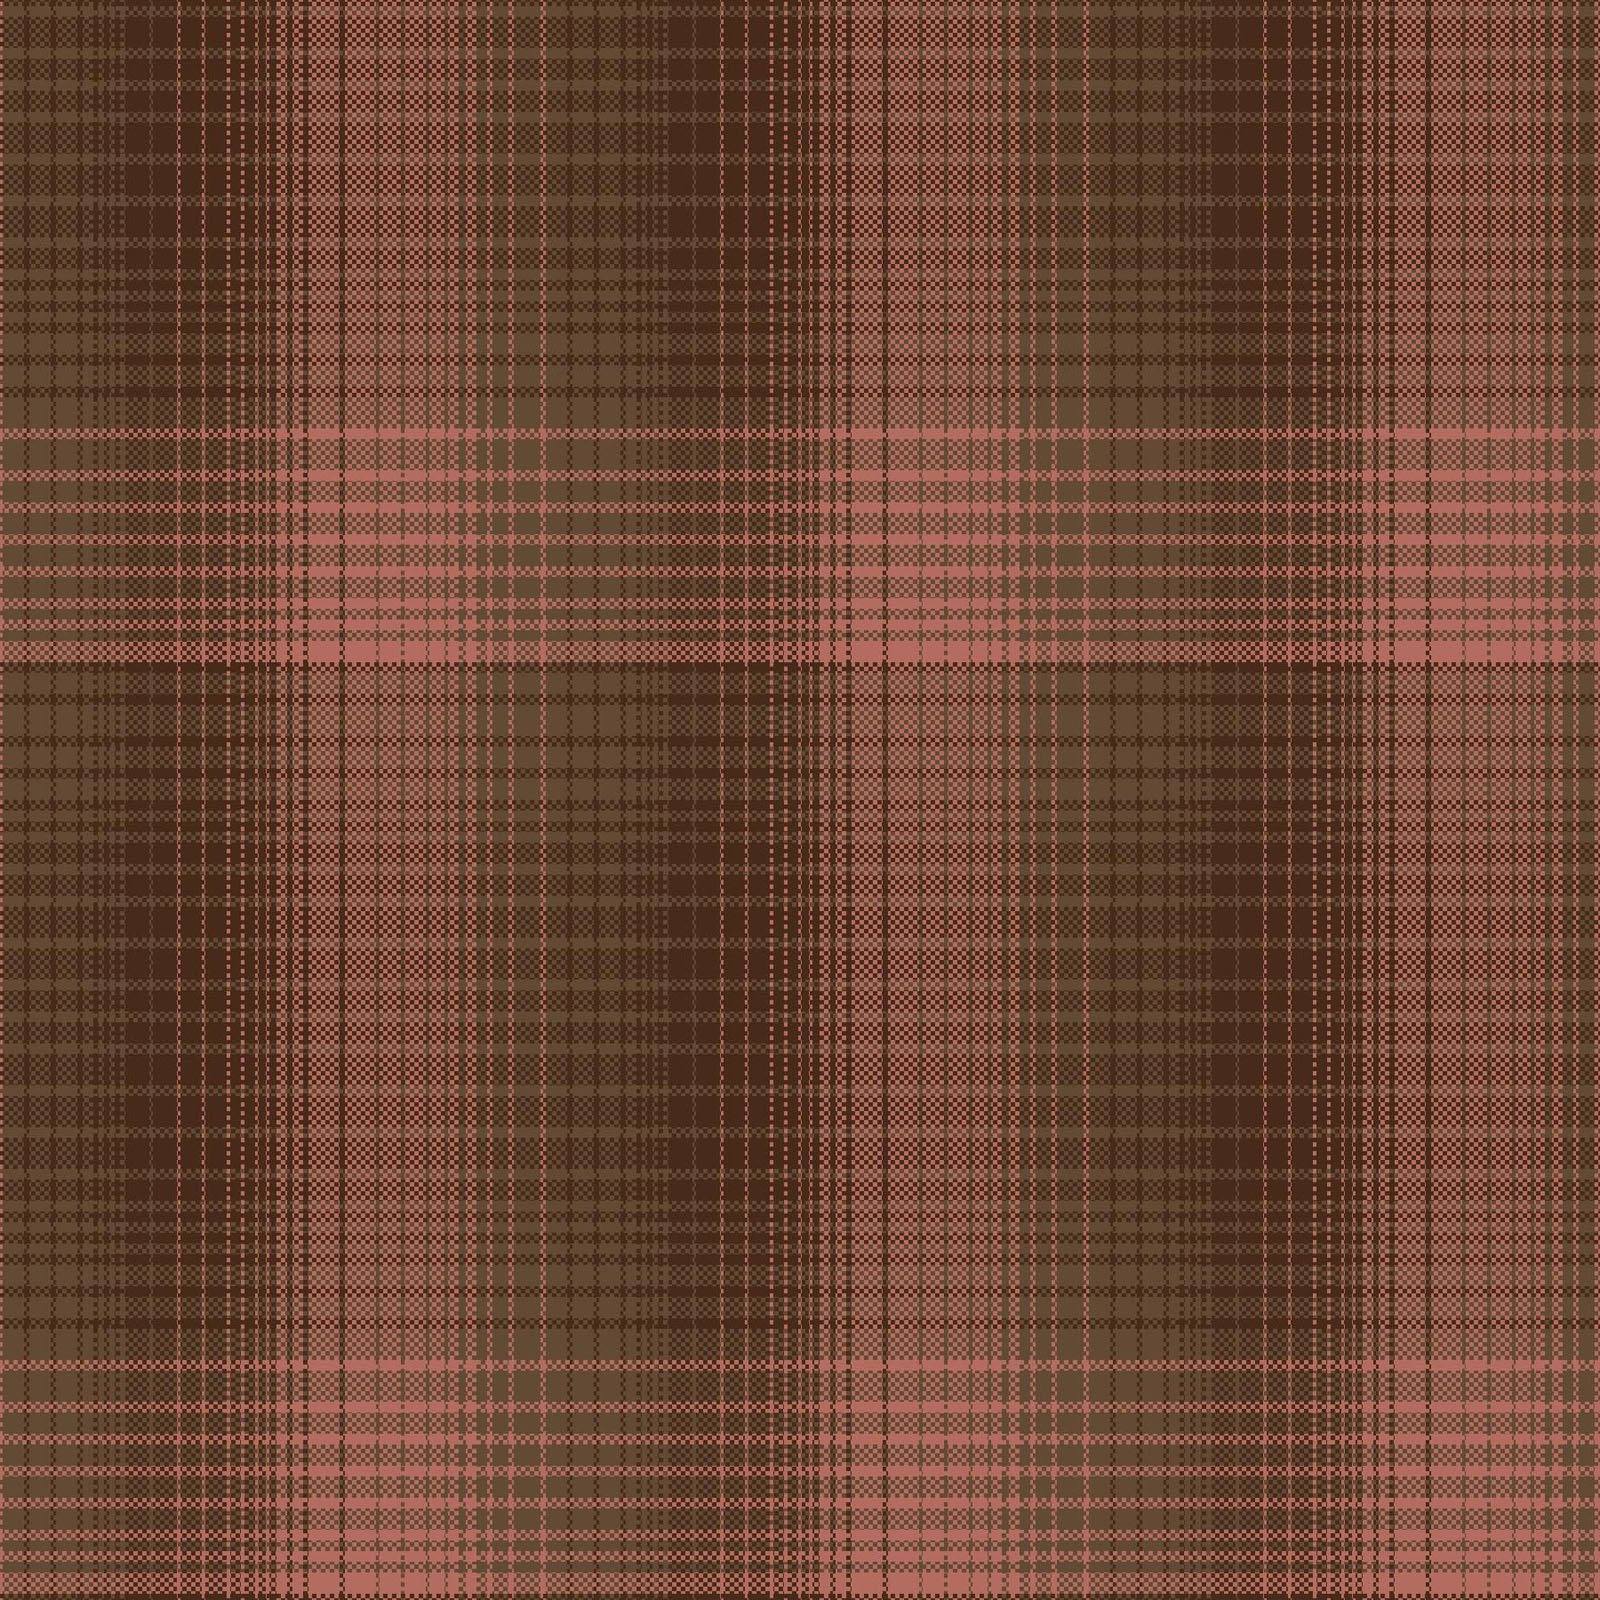 Cherry Blossoms Pink & Brown Plaid 8686Y-23